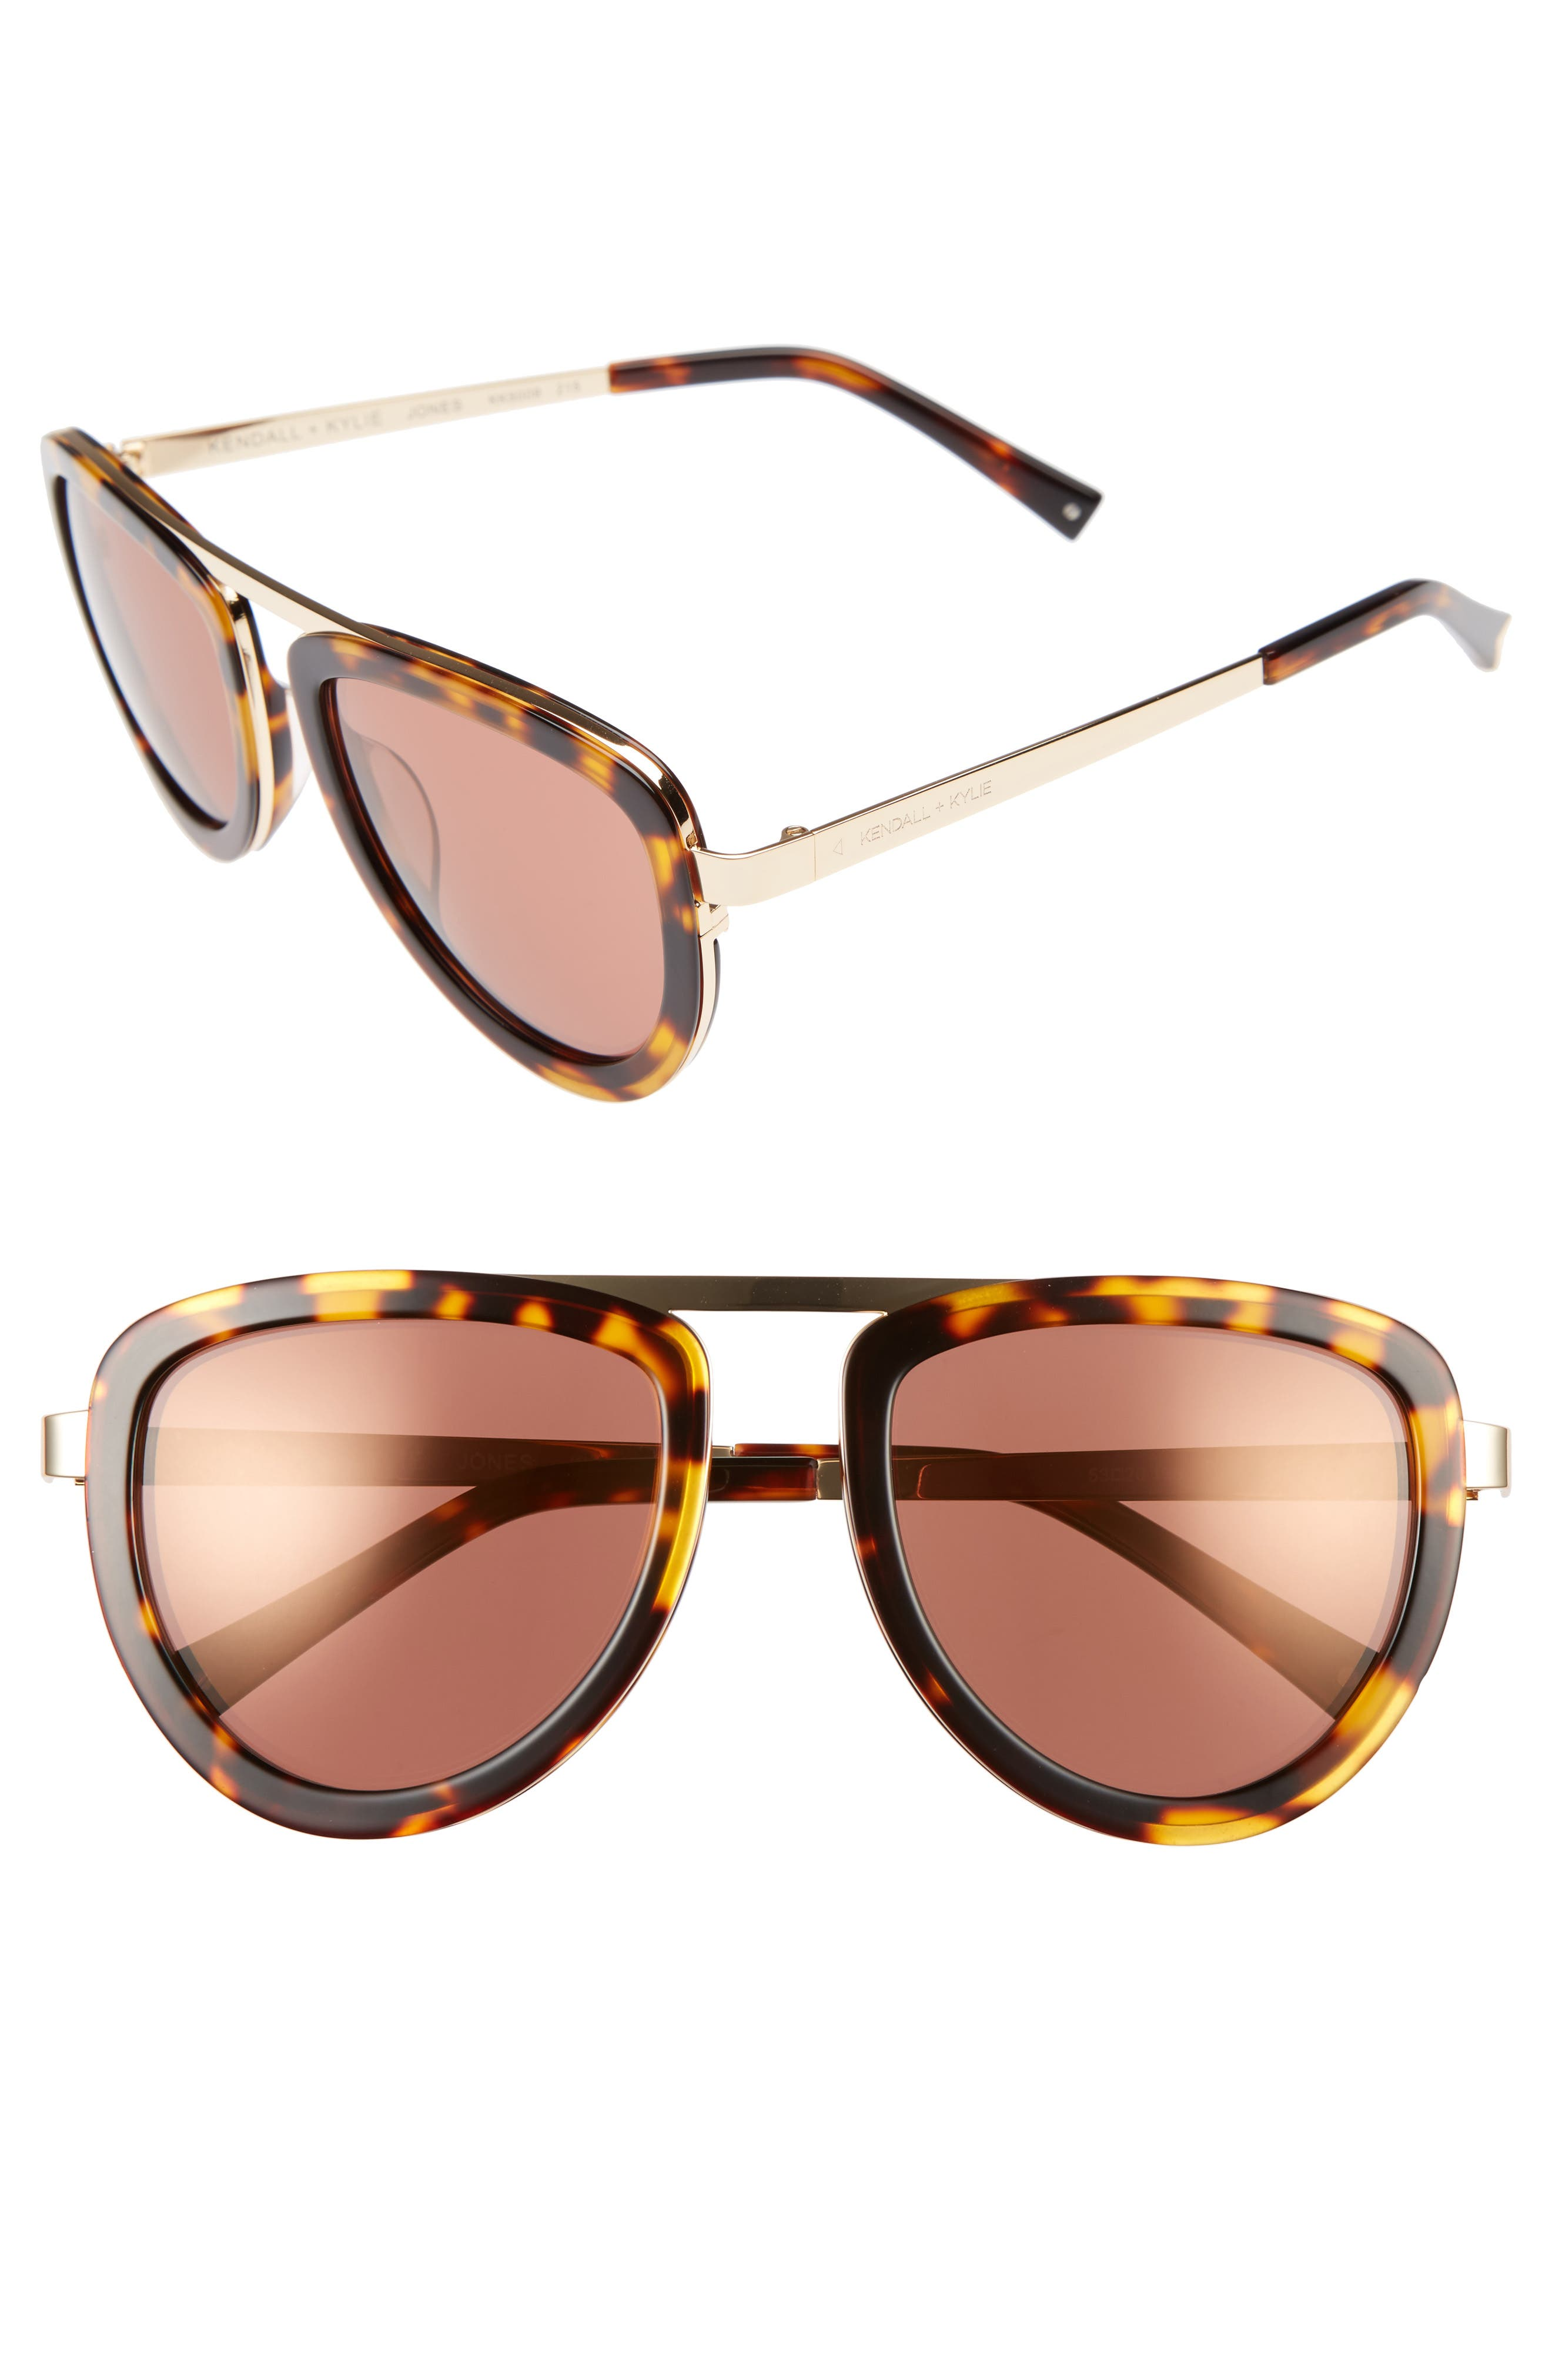 Alternate Image 1 Selected - KENDALL + KYLIE 53mm Aviator Sunglasses